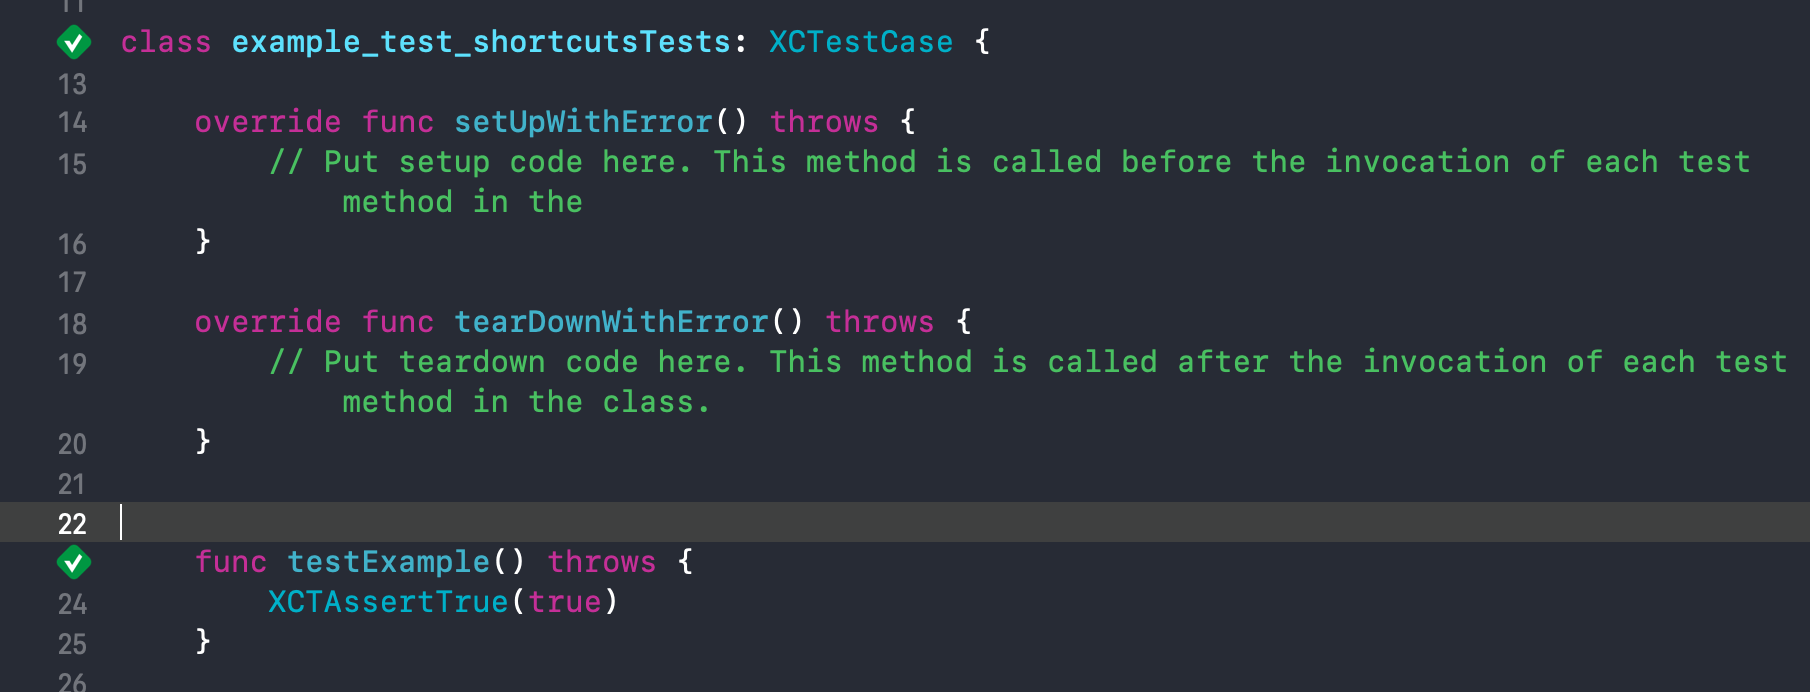 The cursor is outside a test case, but within the scope of XCTestCase class